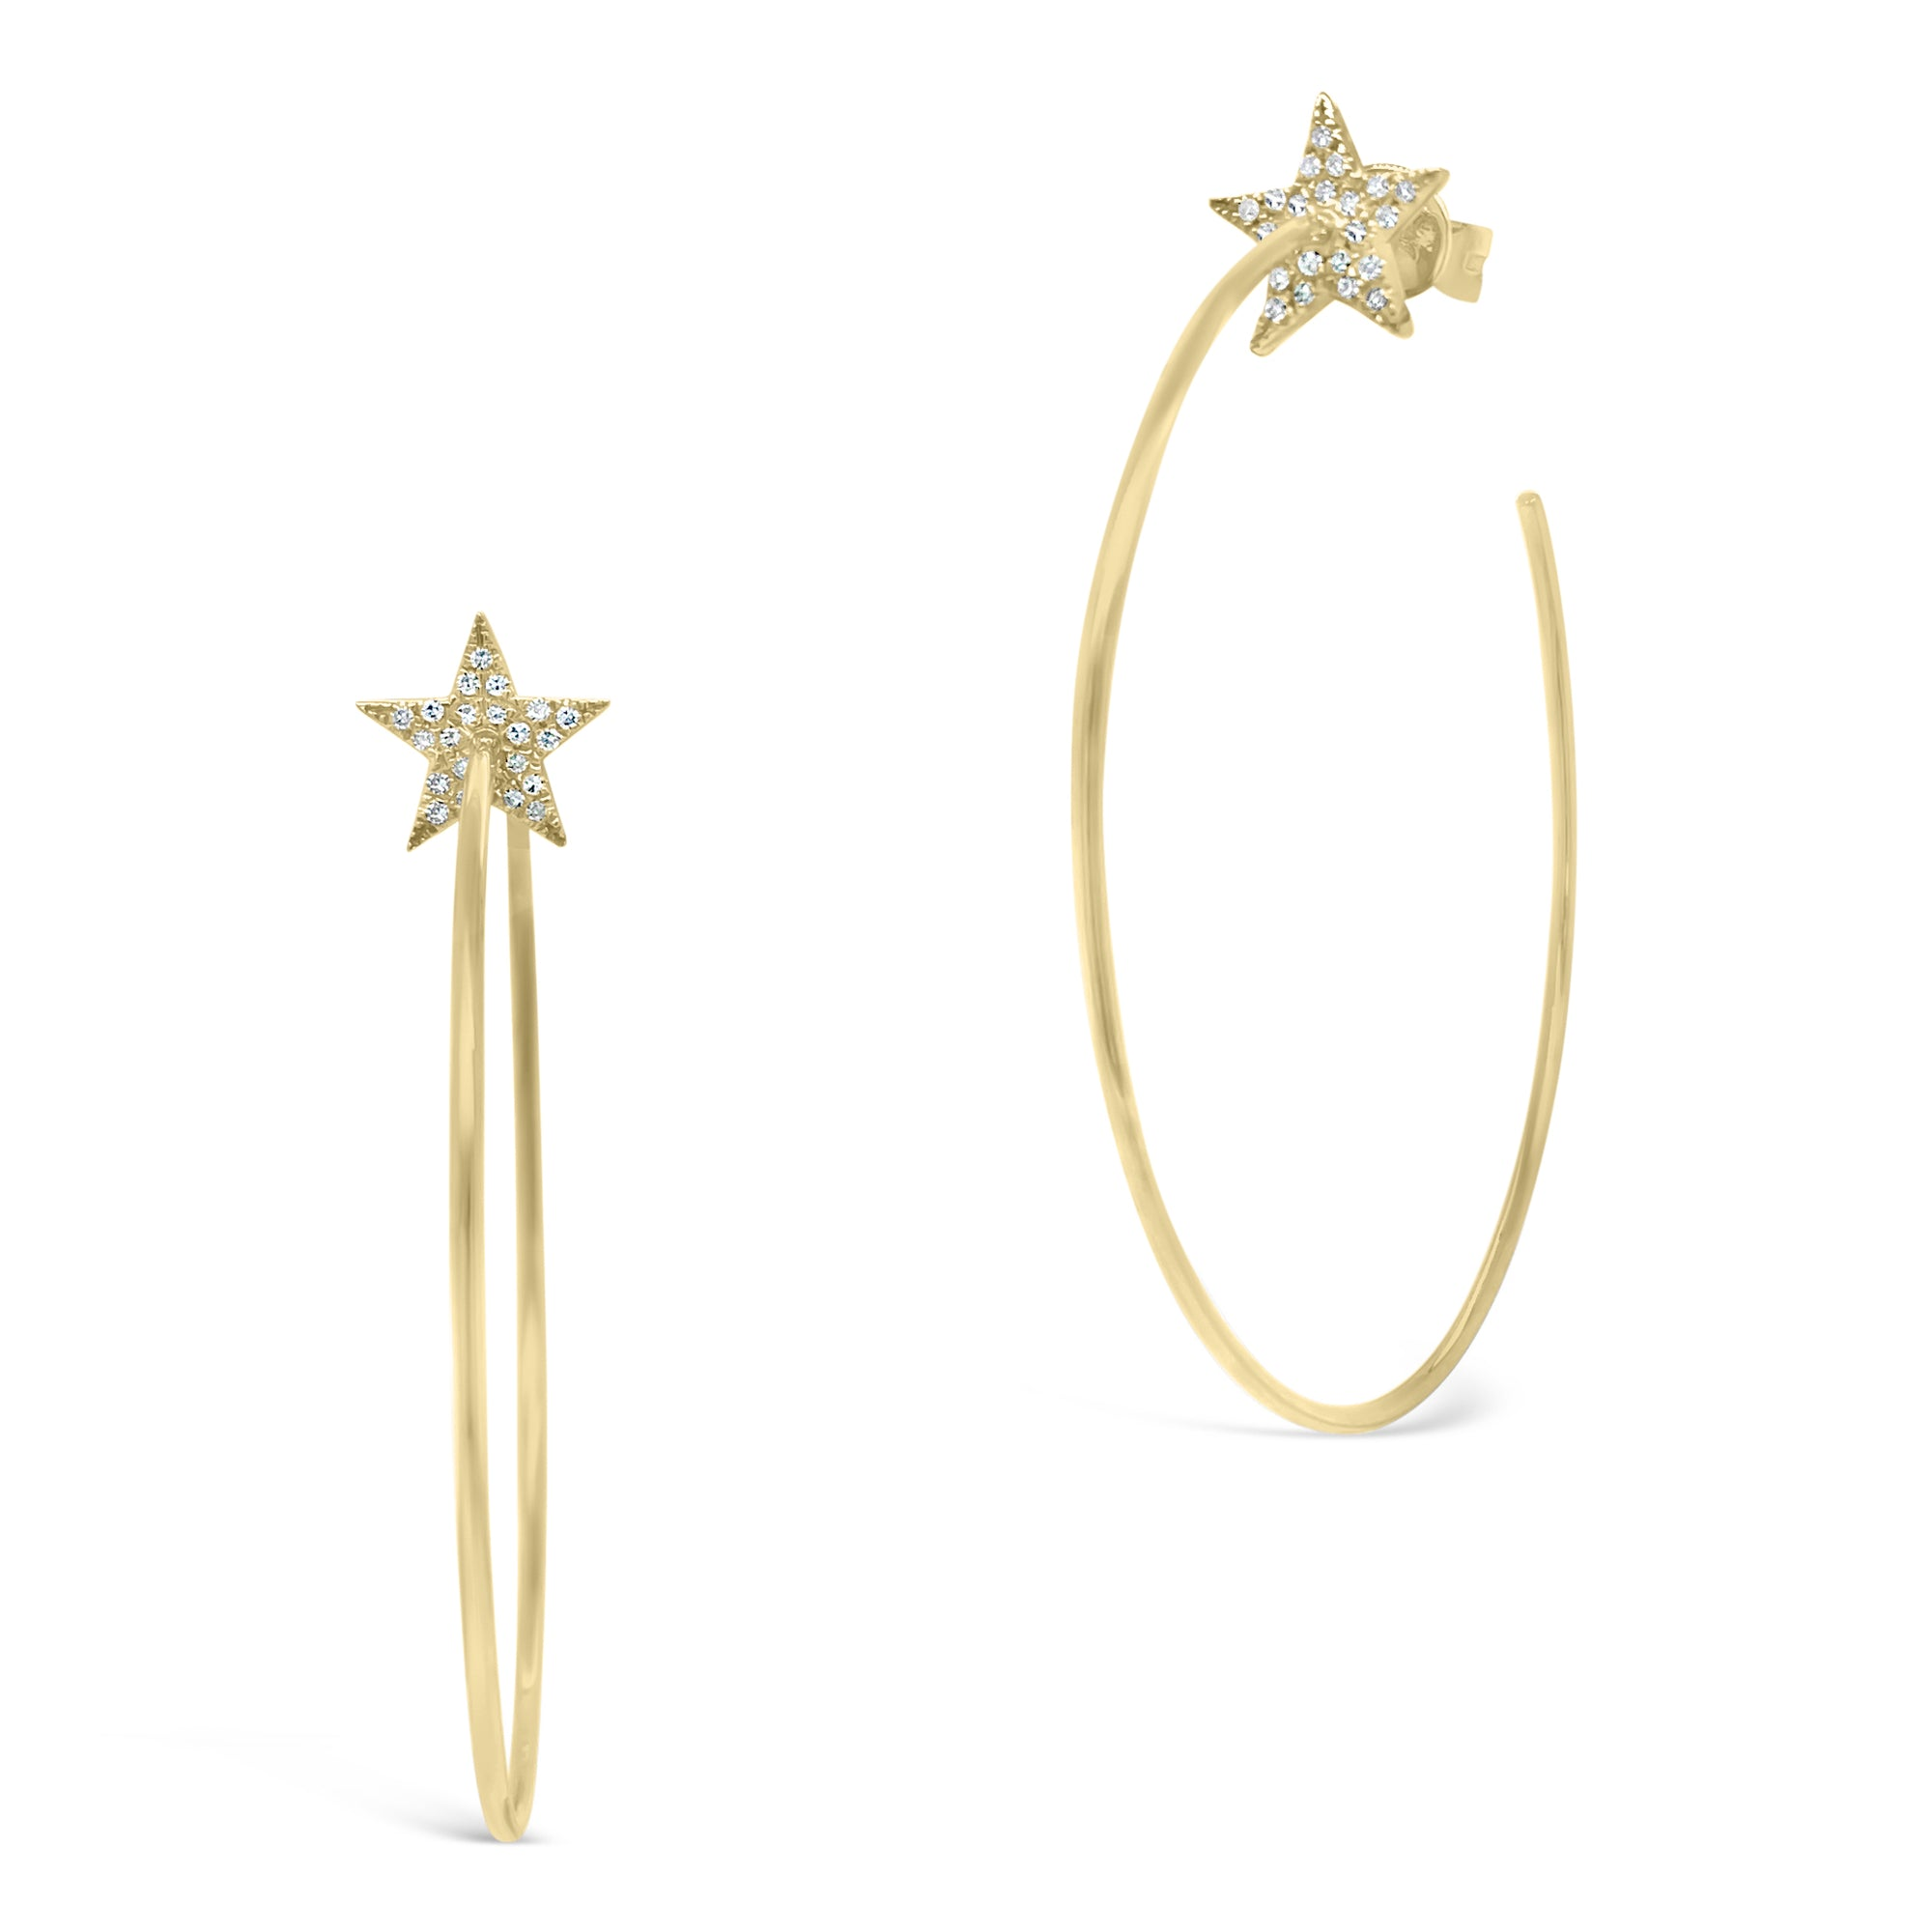 Gold Open Hoop Earrings with Diamond Stars